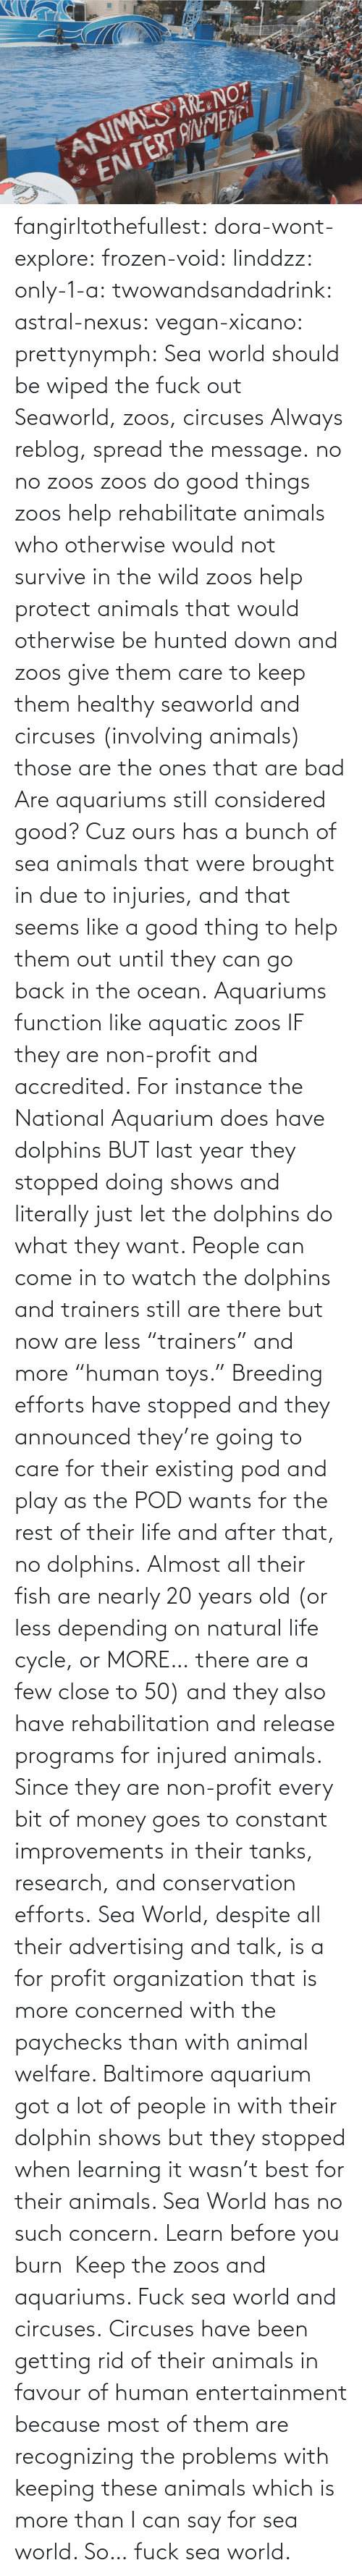 "cuz: fangirltothefullest:  dora-wont-explore:  frozen-void:  linddzz:  only-1-a:  twowandsandadrink:  astral-nexus:  vegan-xicano:  prettynymph:  Sea world should be wiped the fuck out  Seaworld, zoos, circuses  Always reblog, spread the message.  no no zoos zoos do good things zoos help rehabilitate animals who otherwise would not survive in the wild zoos help protect animals that would otherwise be hunted down and zoos give them care to keep them healthy seaworld and circuses (involving animals) those are the ones that are bad  Are aquariums still considered good? Cuz ours has a bunch of sea animals that were brought in due to injuries, and that seems like a good thing to help them out until they can go back in the ocean.  Aquariums function like aquatic zoos IF they are non-profit and accredited. For instance the National Aquarium does have dolphins BUT last year they stopped doing shows and literally just let the dolphins do what they want. People can come in to watch the dolphins and trainers still are there but now are less ""trainers"" and more ""human toys."" Breeding efforts have stopped and they announced they're going to care for their existing pod and play as the POD wants for the rest of their life and after that, no dolphins. Almost all their fish are nearly 20 years old (or less depending on natural life cycle, or MORE… there are a few close to 50) and they also have rehabilitation and release programs for injured animals. Since they are non-profit every bit of money goes to constant improvements in their tanks, research, and conservation efforts. Sea World, despite all their advertising and talk, is a for profit organization that is more concerned with the paychecks than with animal welfare. Baltimore aquarium got a lot of people in with their dolphin shows but they stopped when learning it wasn't best for their animals. Sea World has no such concern.  Learn before you burn   Keep the zoos and aquariums. Fuck sea world and circuses.  Circuses have been getting rid of  their animals in favour of human entertainment because most of them are recognizing the problems with keeping these animals which is more than I can say for sea world. So… fuck sea world."